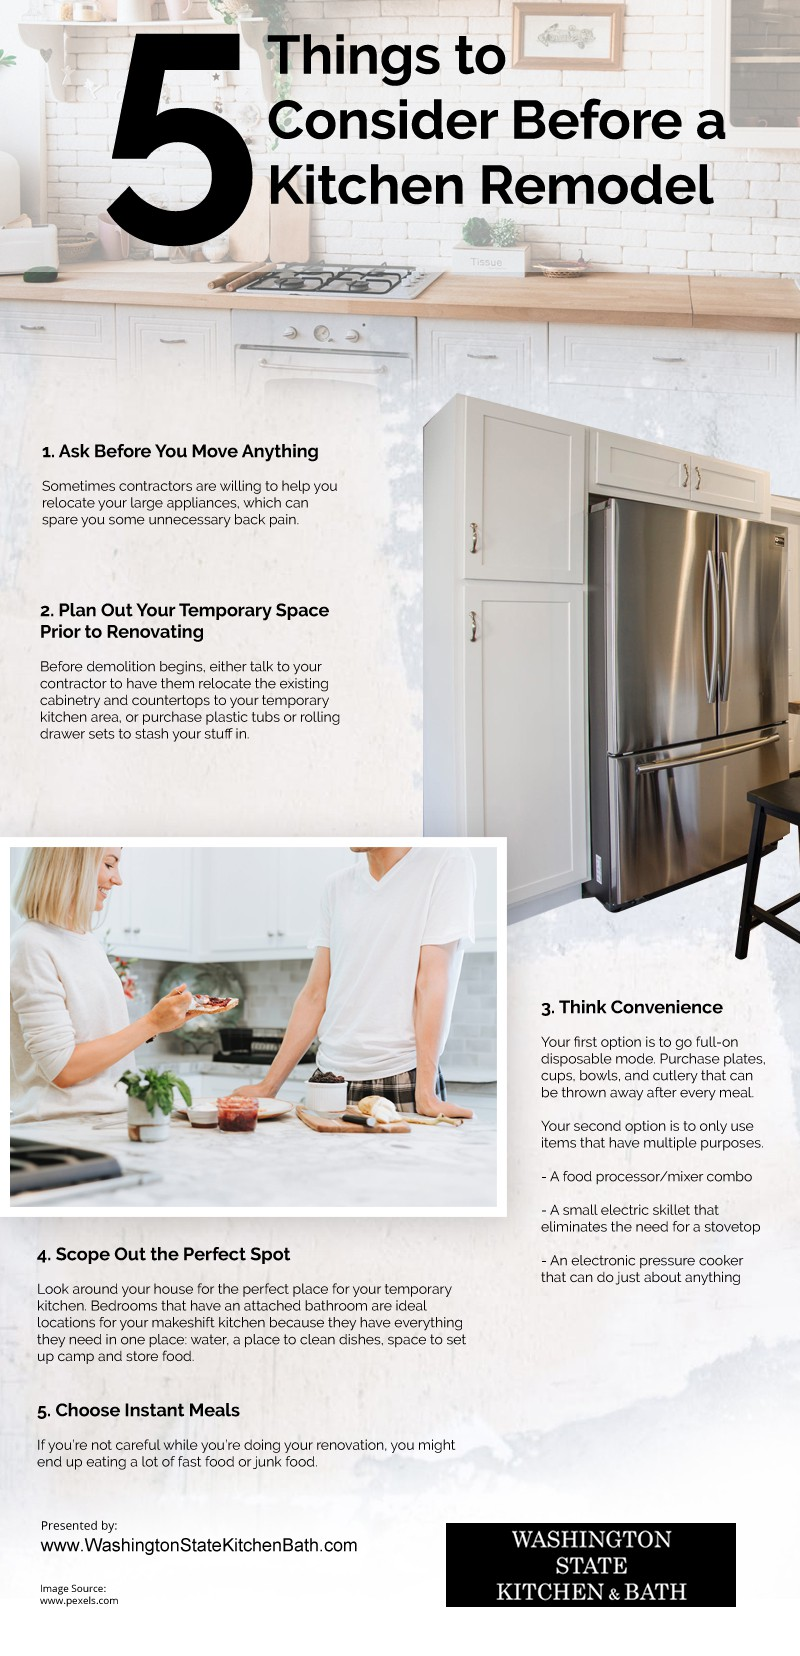 5 Things to Consider Before a Kitchen Remodel